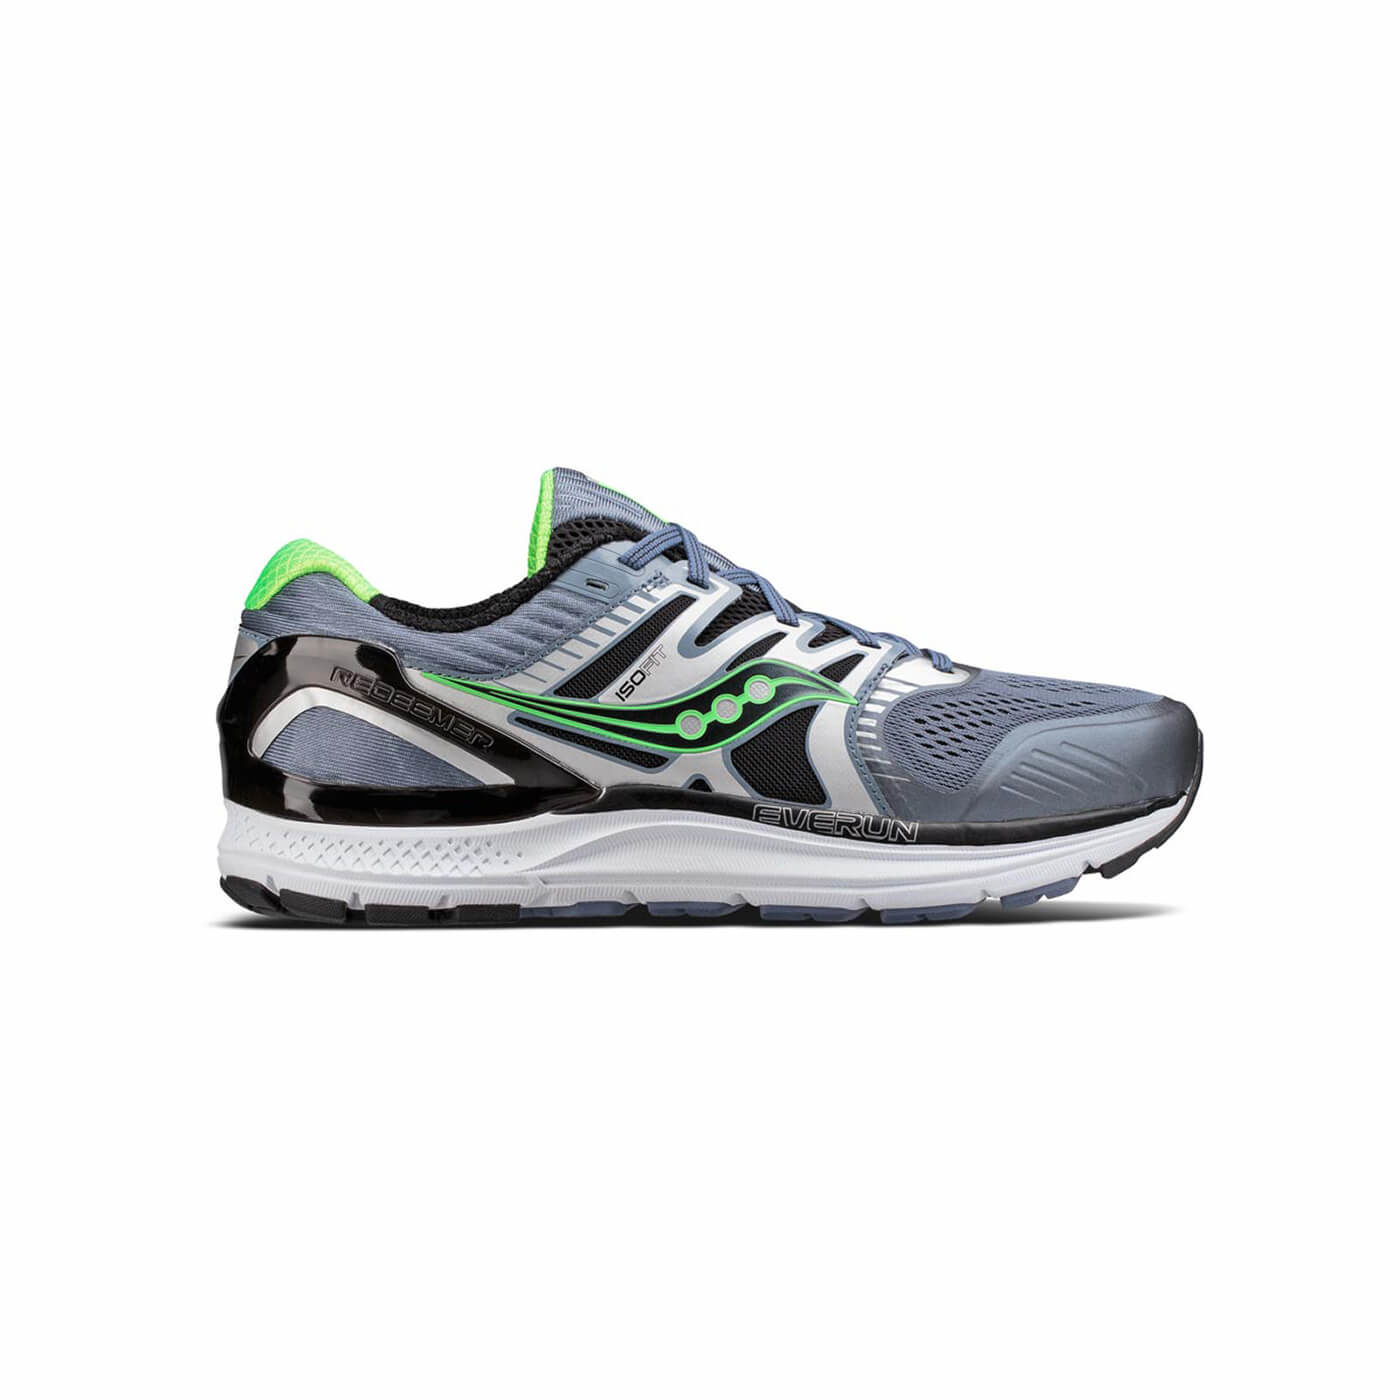 Saucony Redeemer Iso2 in Grau Silber